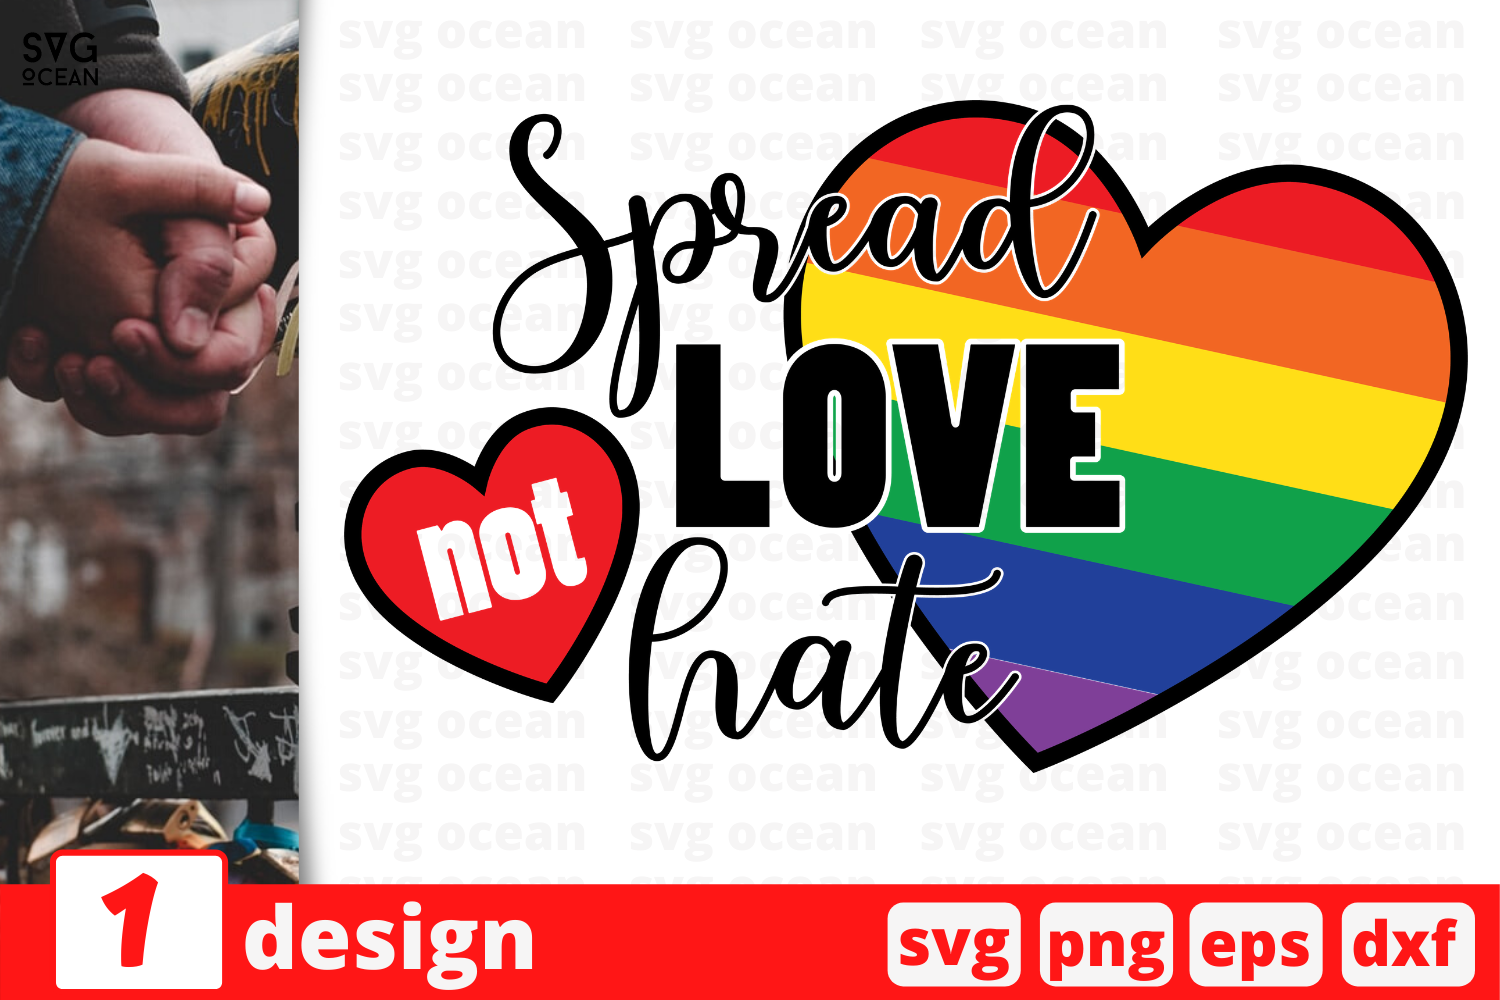 Download Free Spread Love Not Hate Graphic By Svgocean Creative Fabrica for Cricut Explore, Silhouette and other cutting machines.